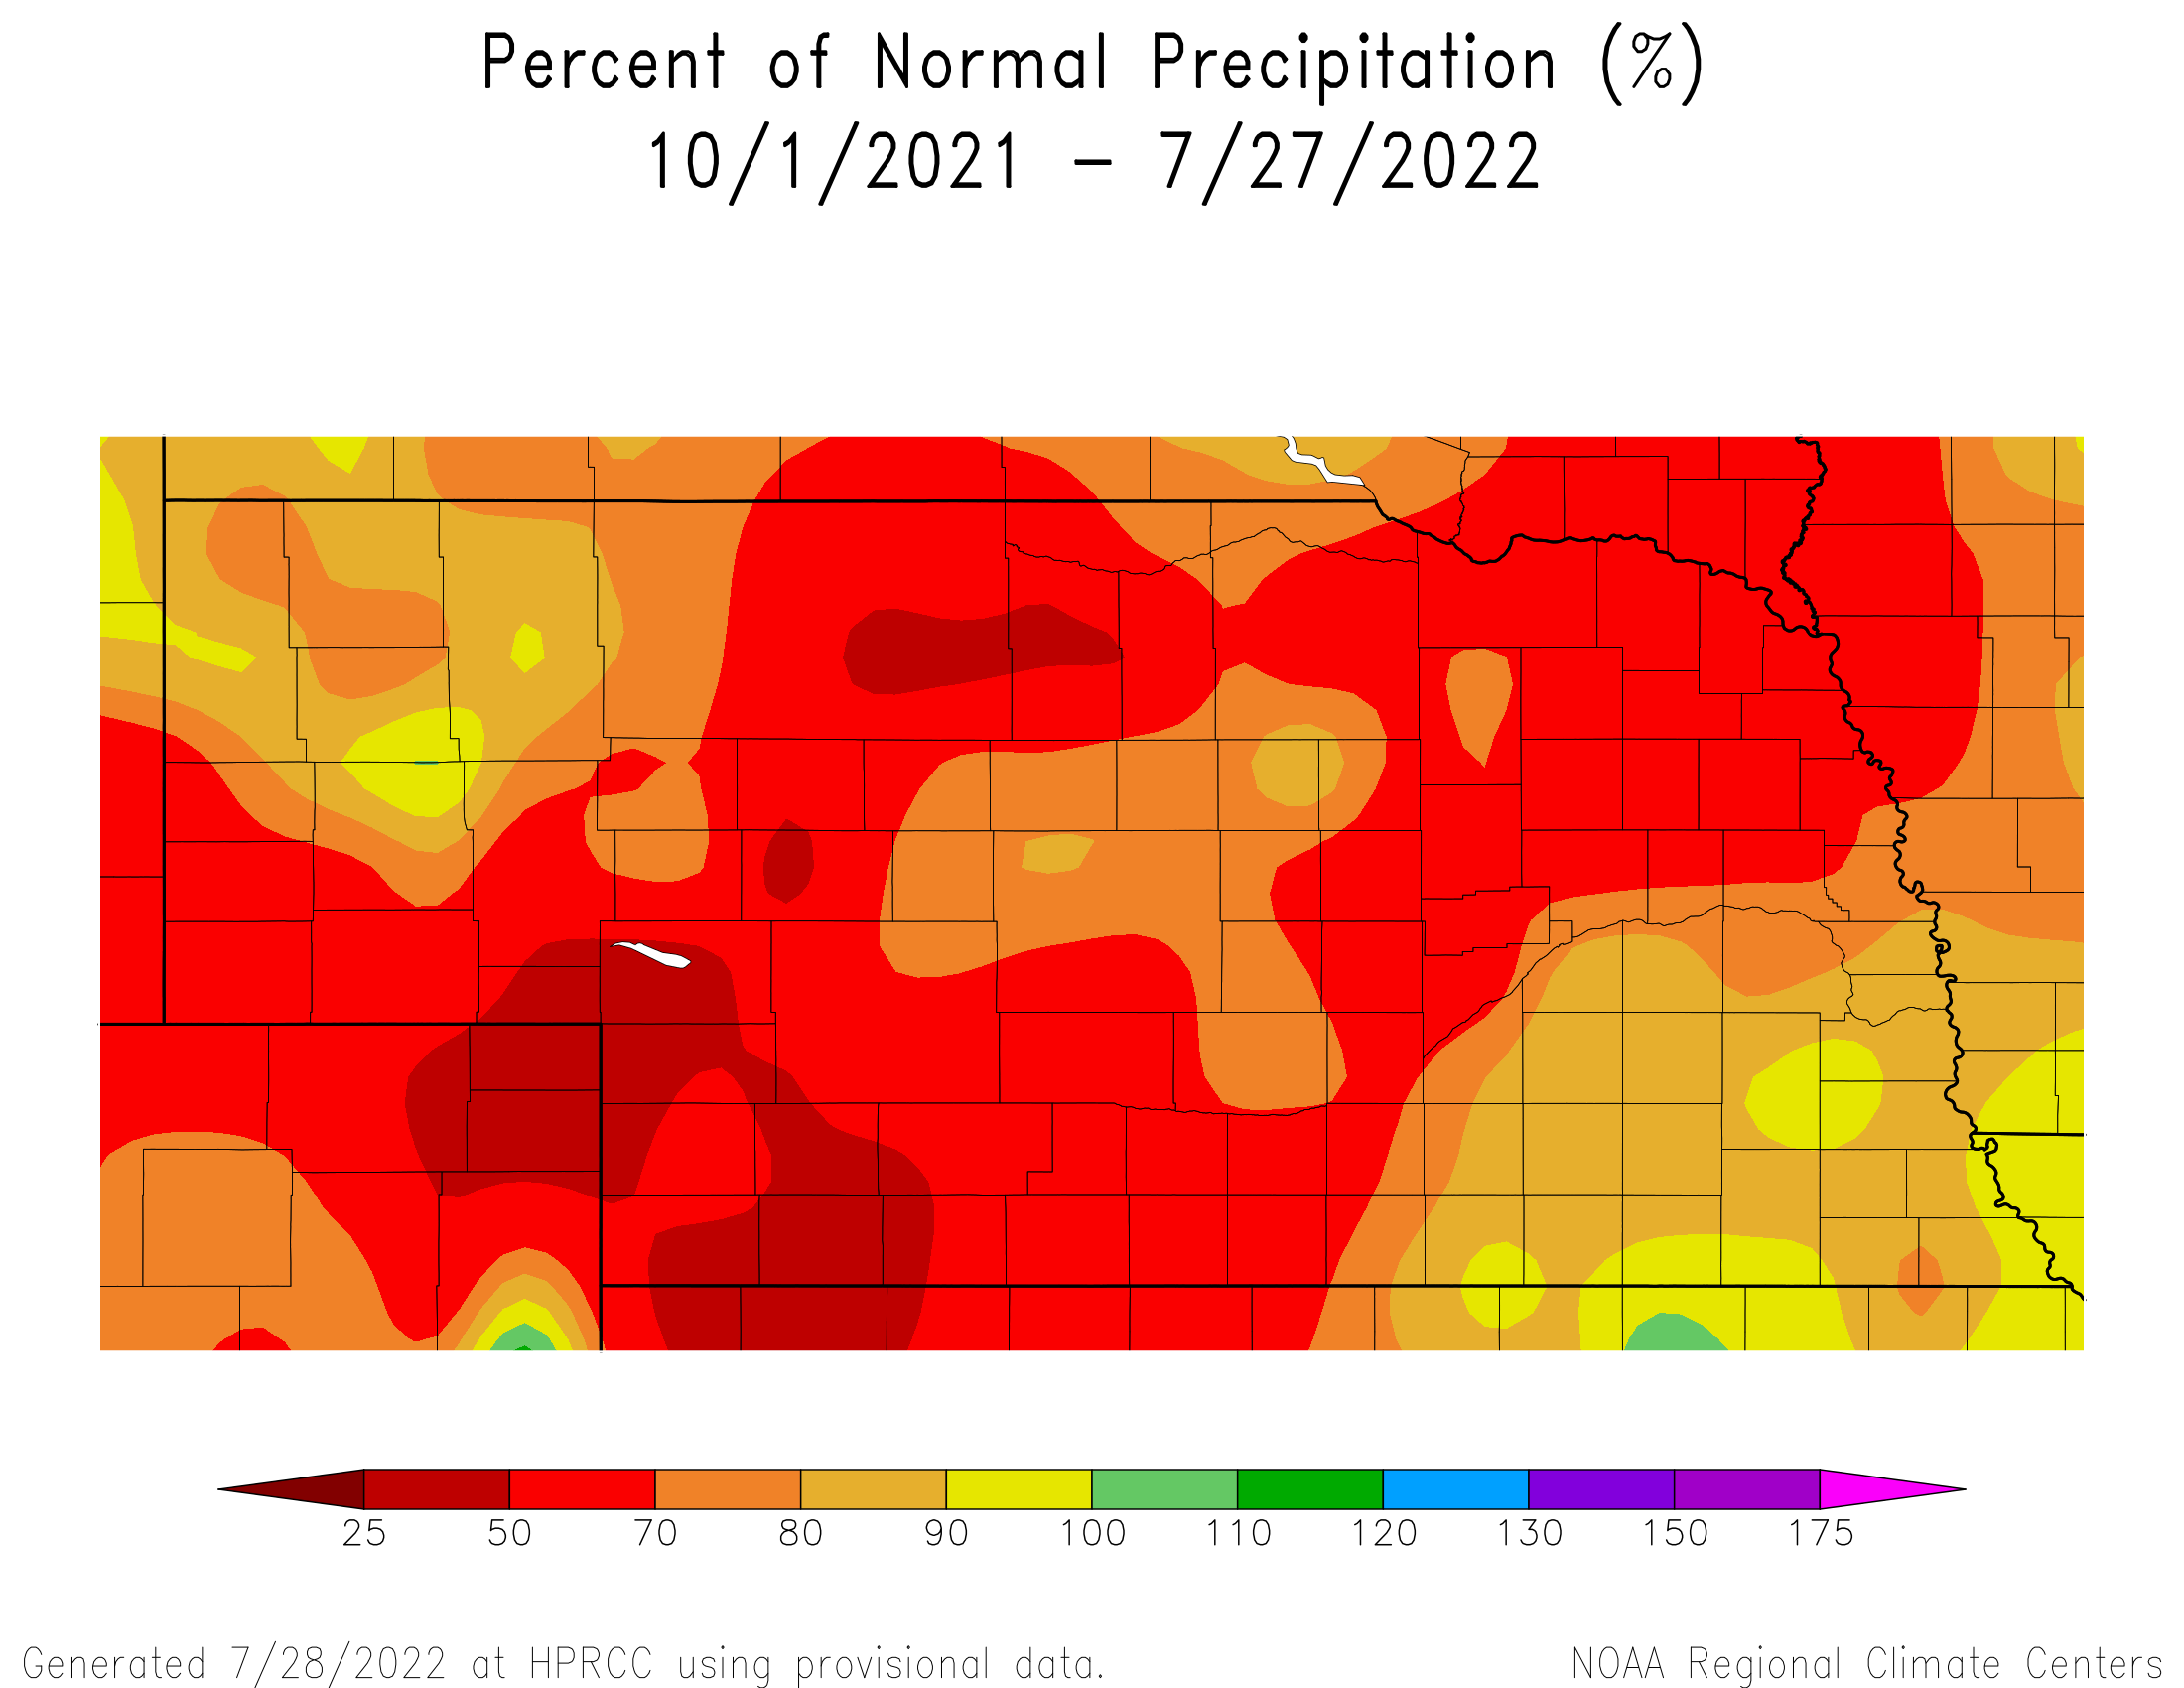 Image of Percent of Normal Precipitation for the Water Year